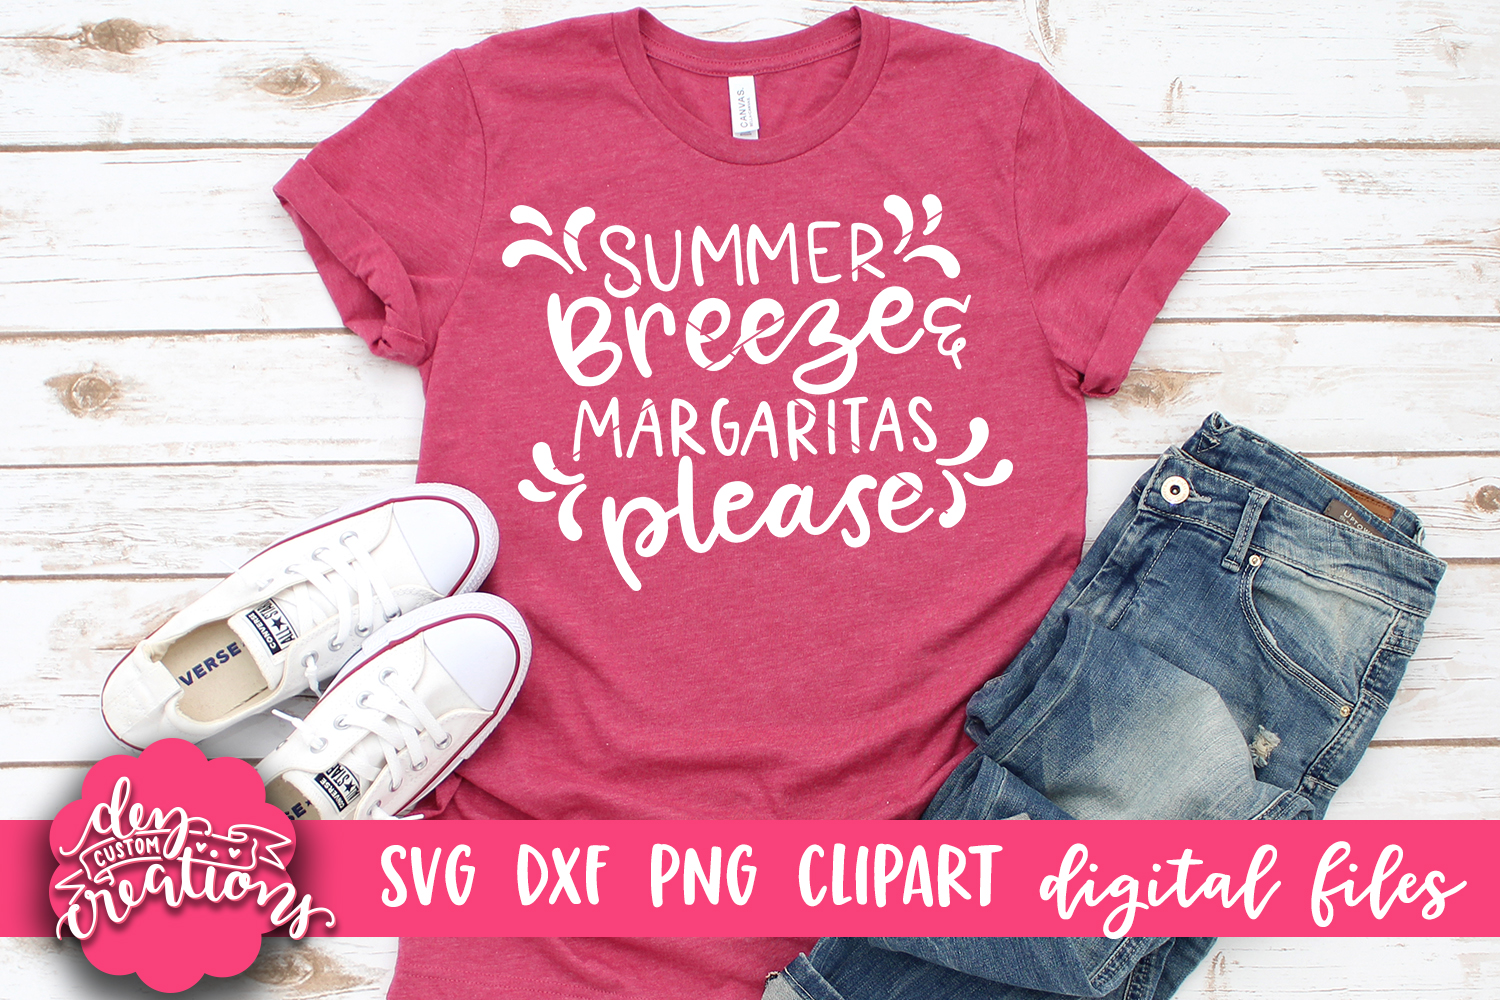 Summer Breeze & Margaritas Please - SVG - DXF - PNG Cut File example image 3